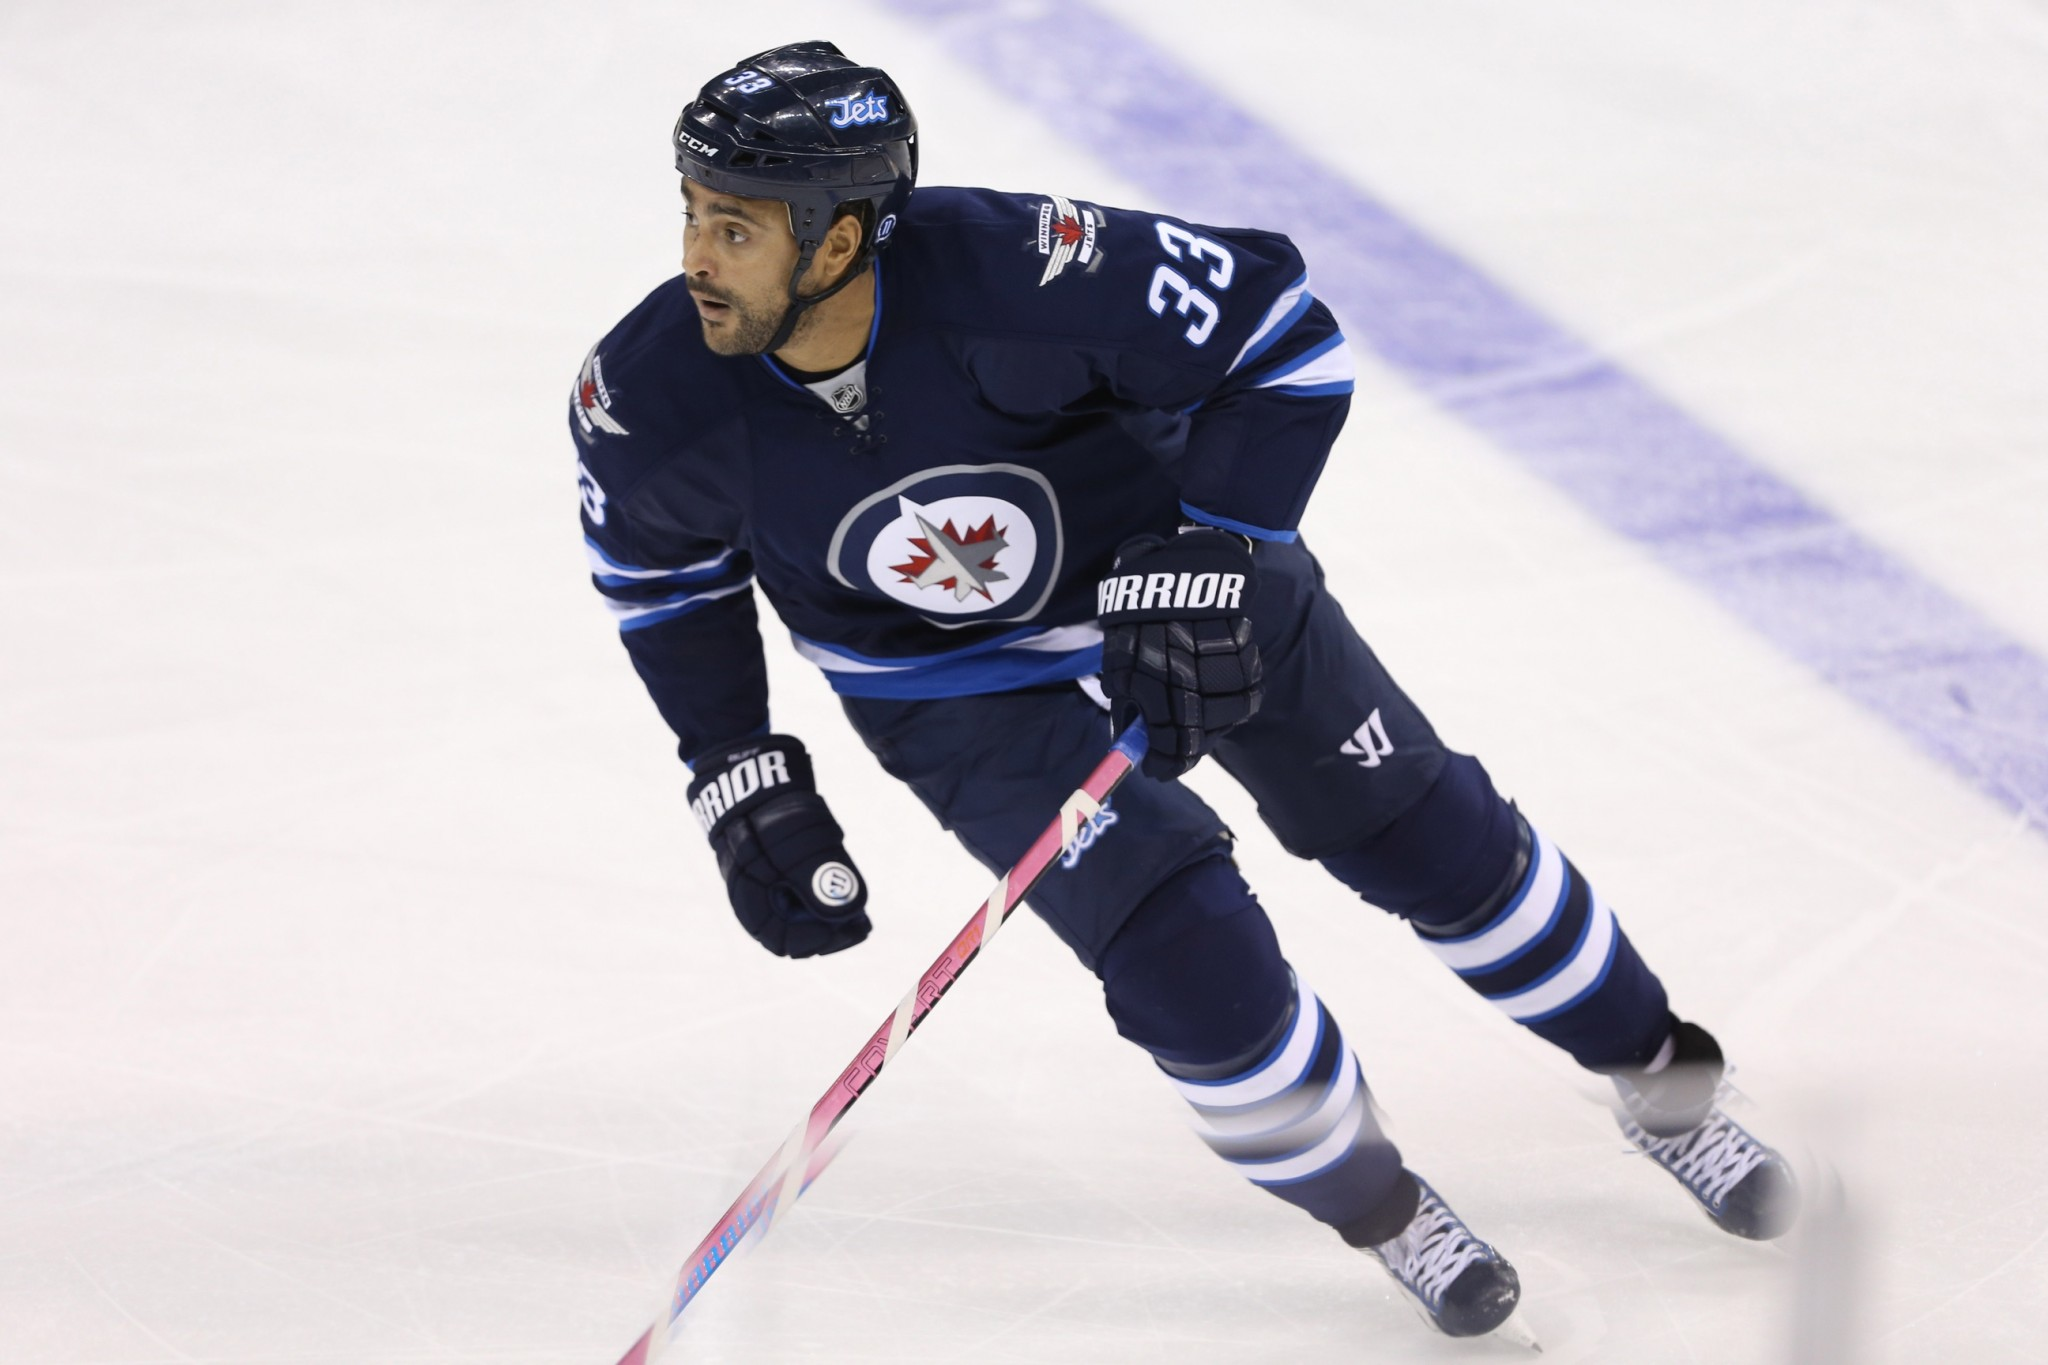 Dustin Byfuglien. Bruce Fedyck / USA Today Sports Images